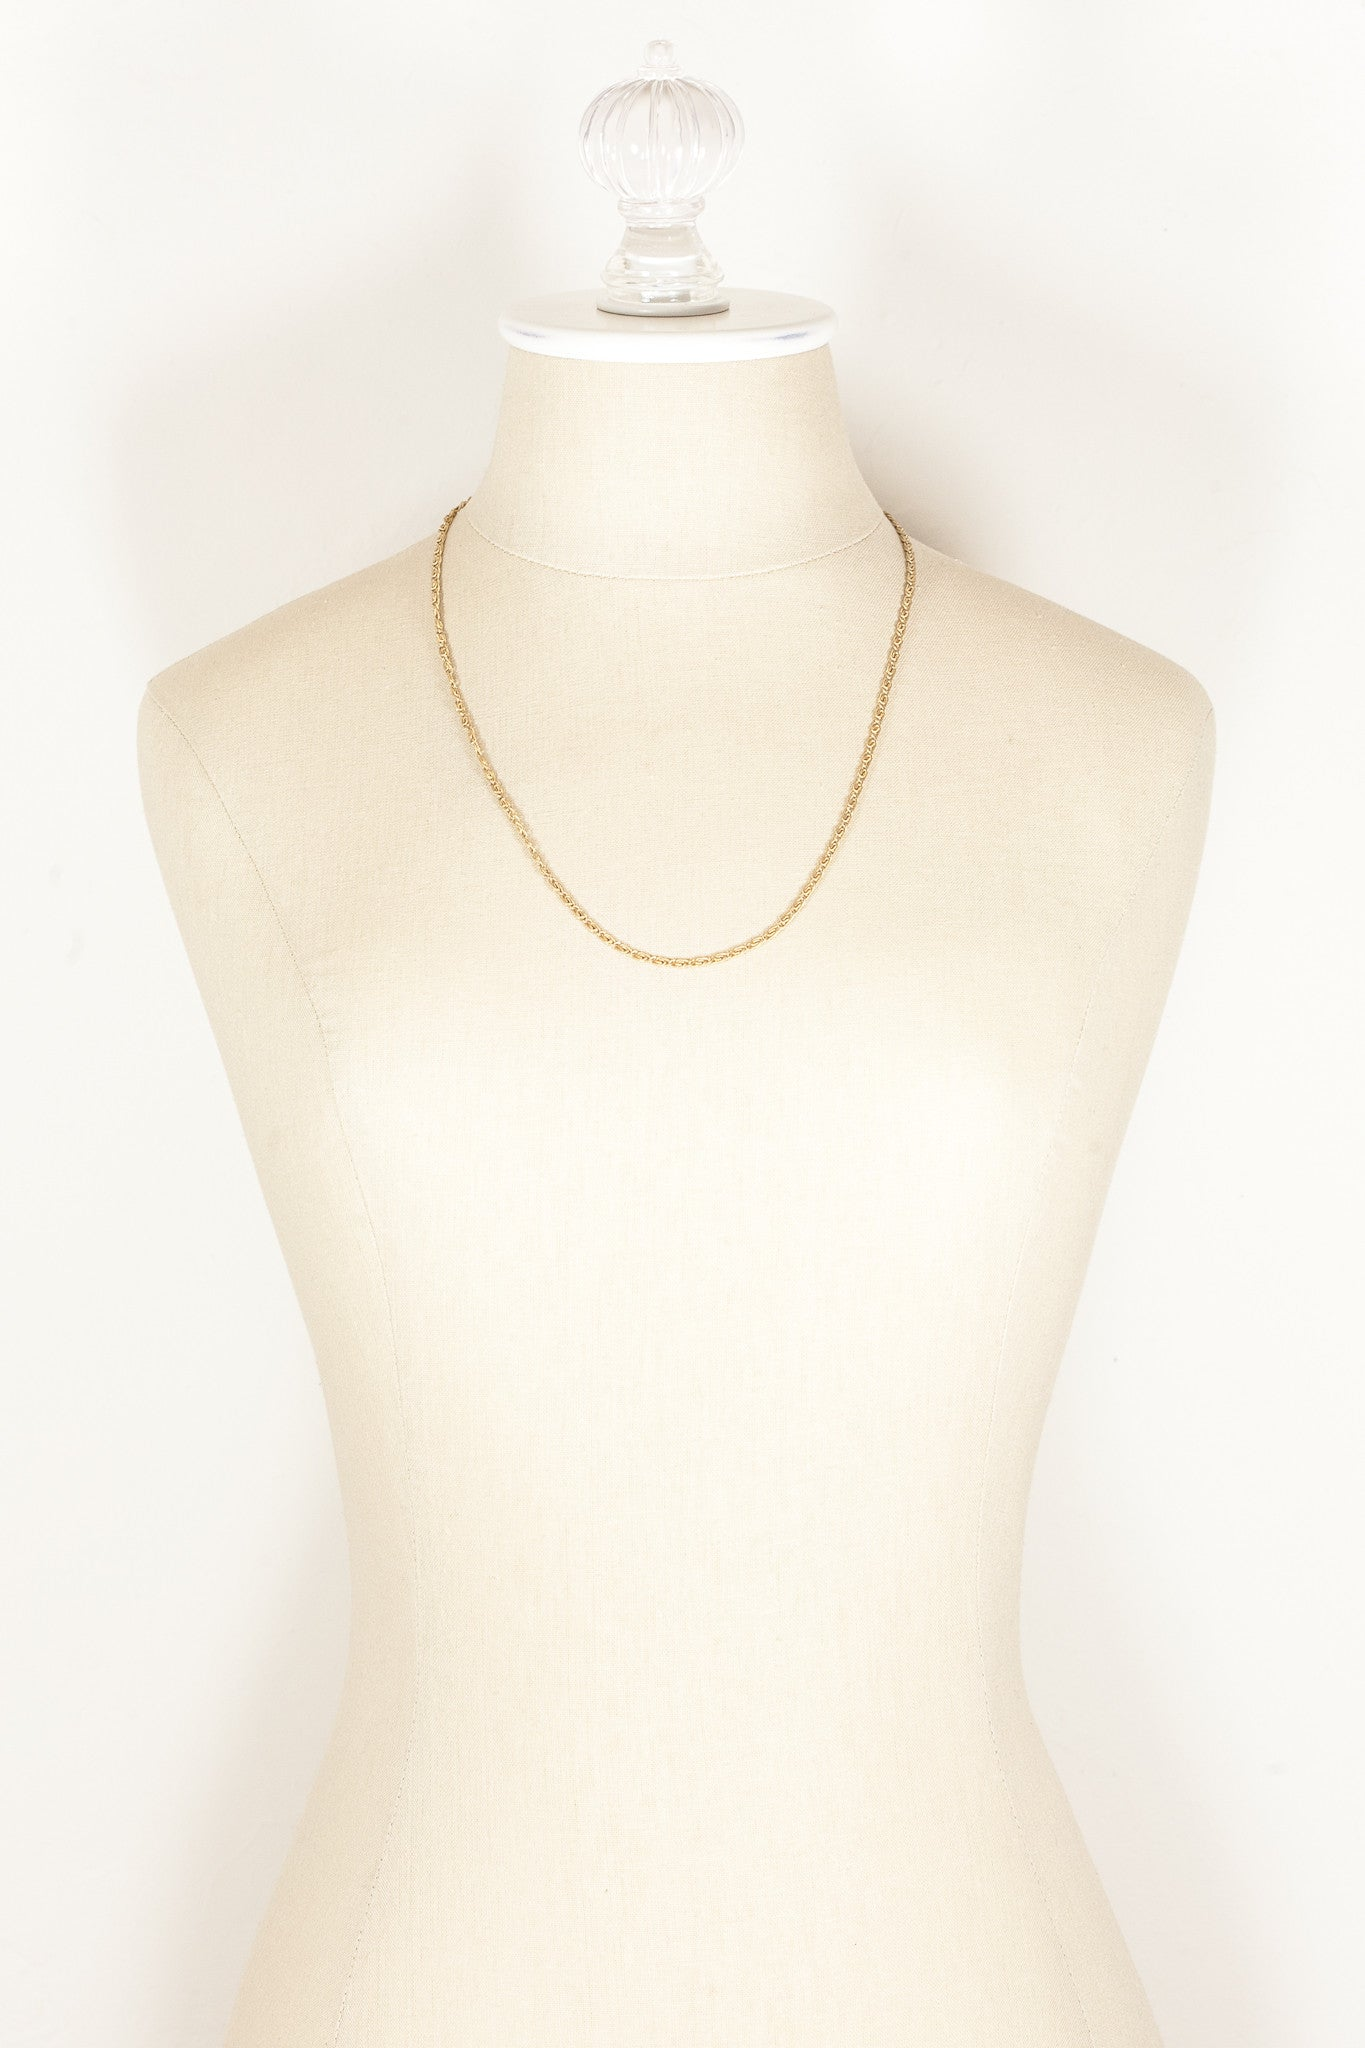 70's__Vintage__Classic Chain Necklace